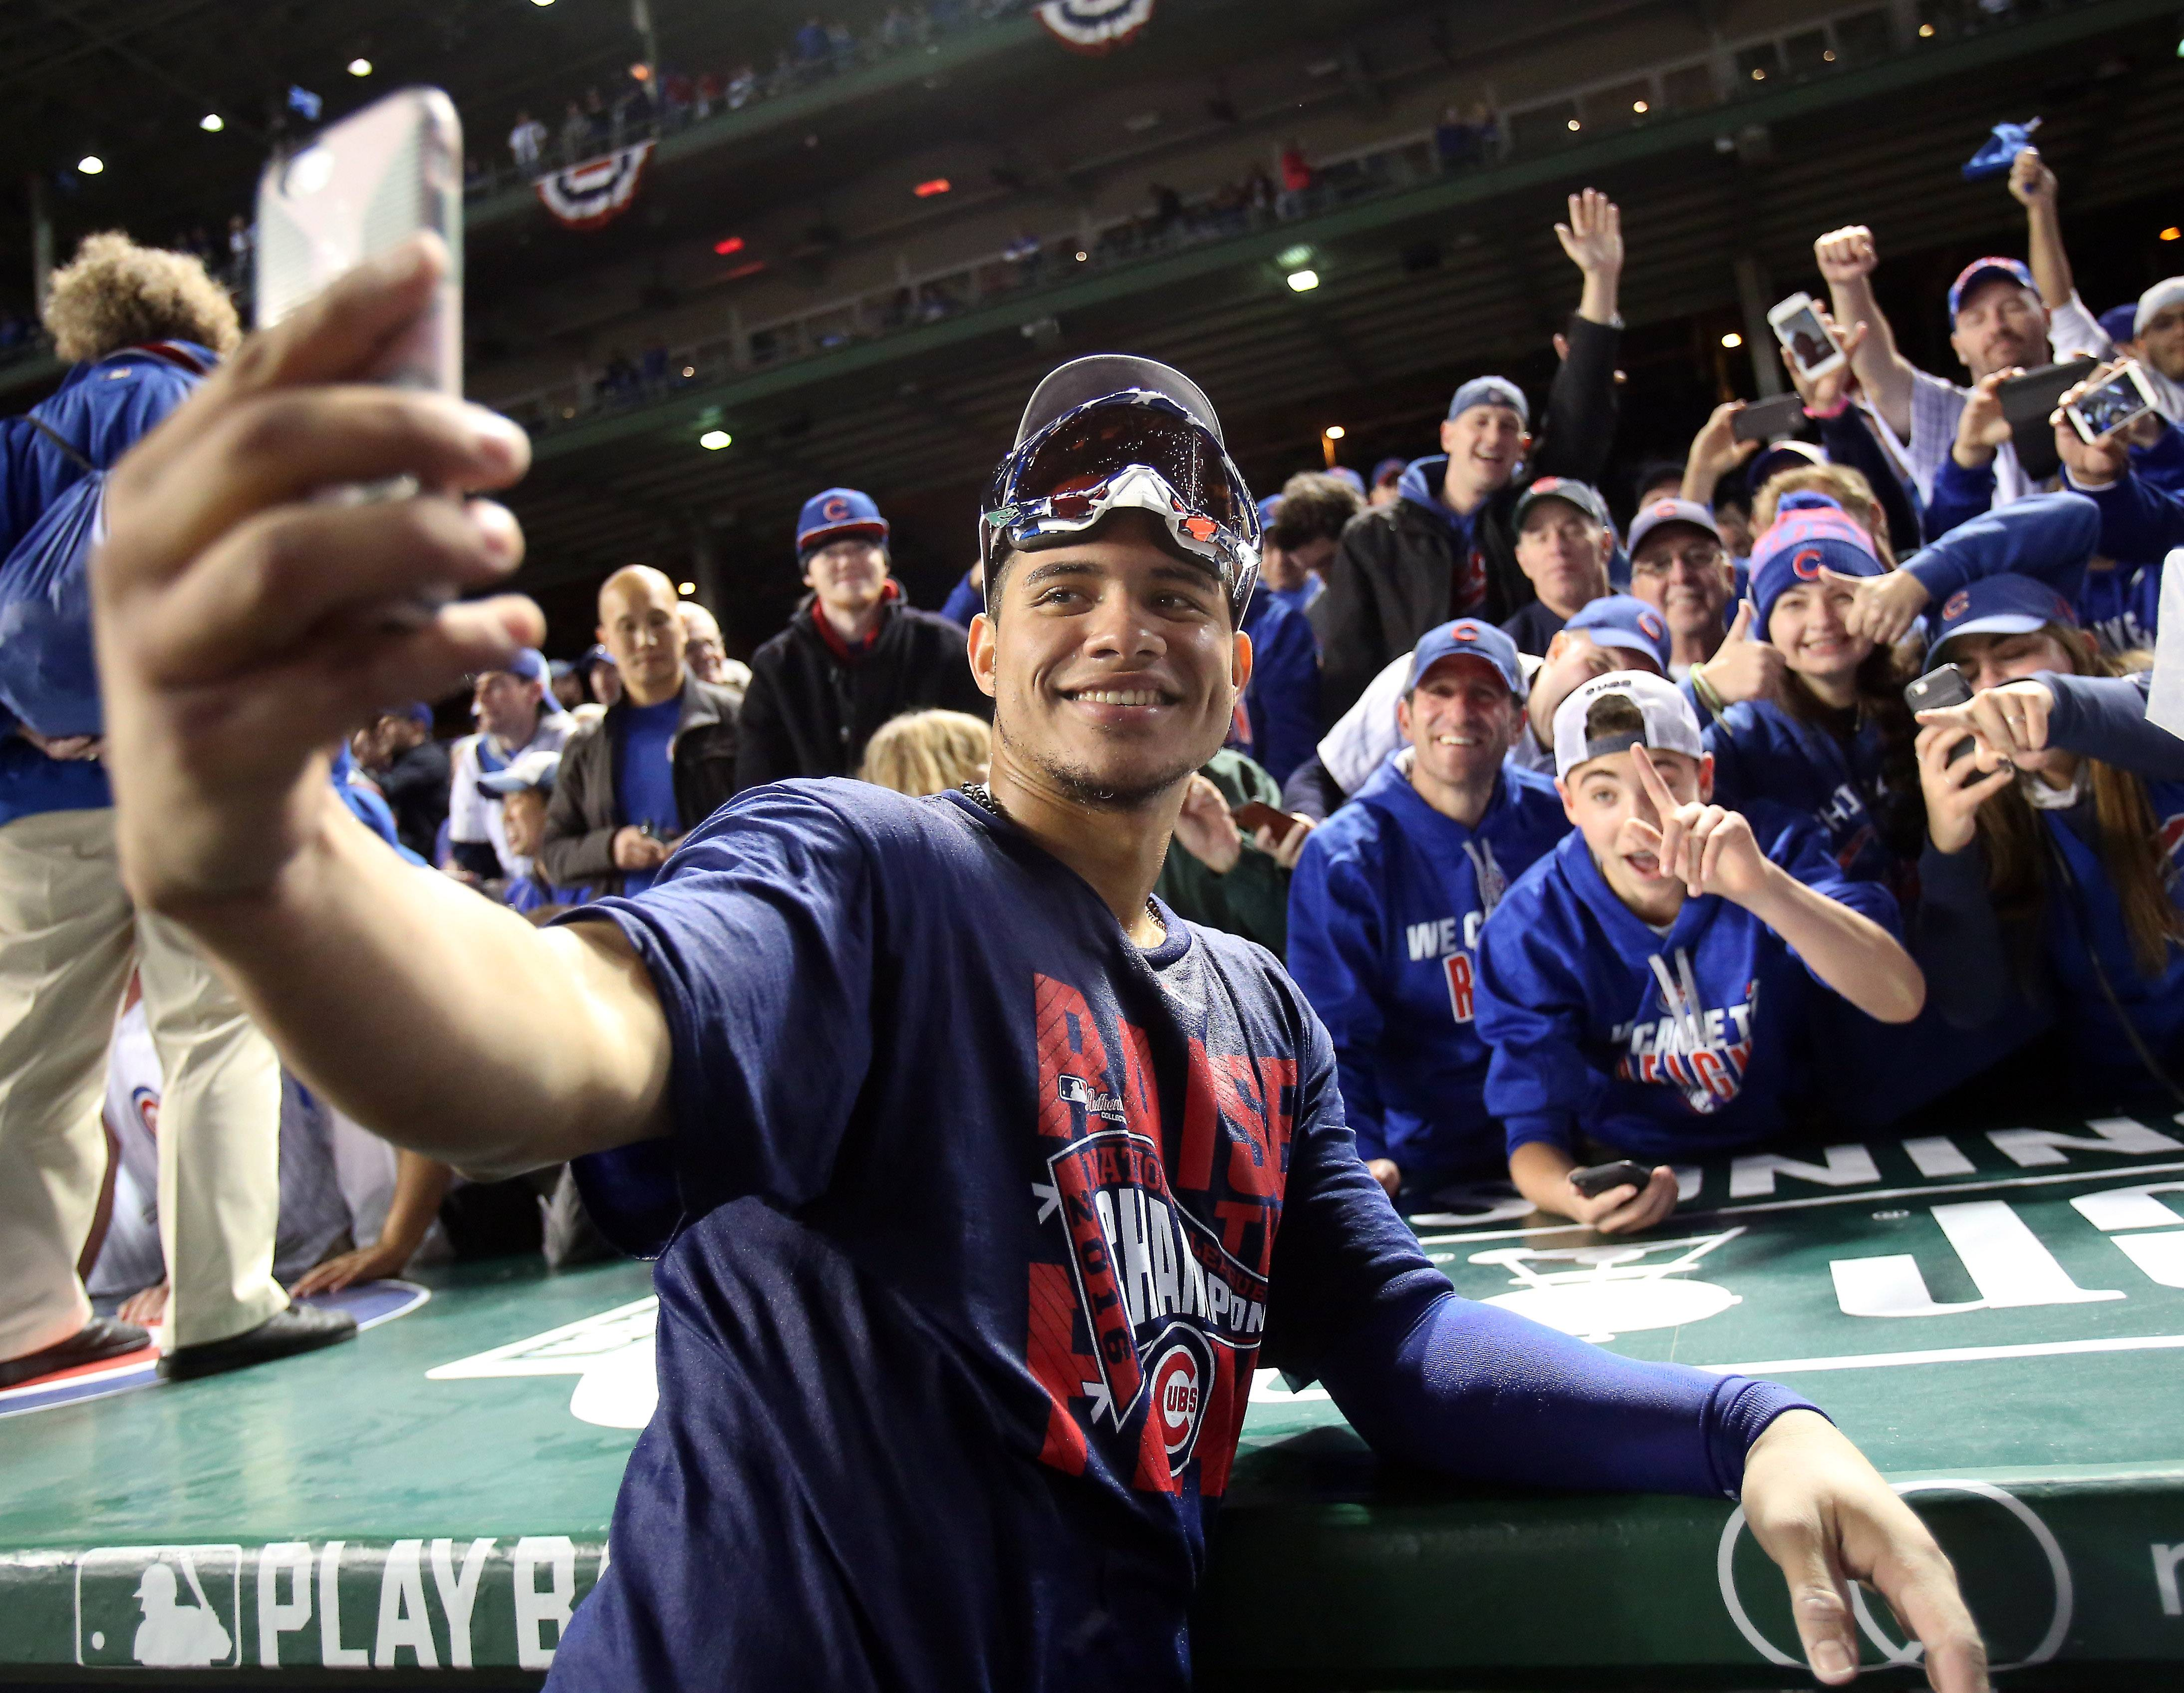 Cubs catcher Willson Contreras takes a selfie with the fans after Game 6 of baseball's National League championship series at Wrigley Field in Chicago.